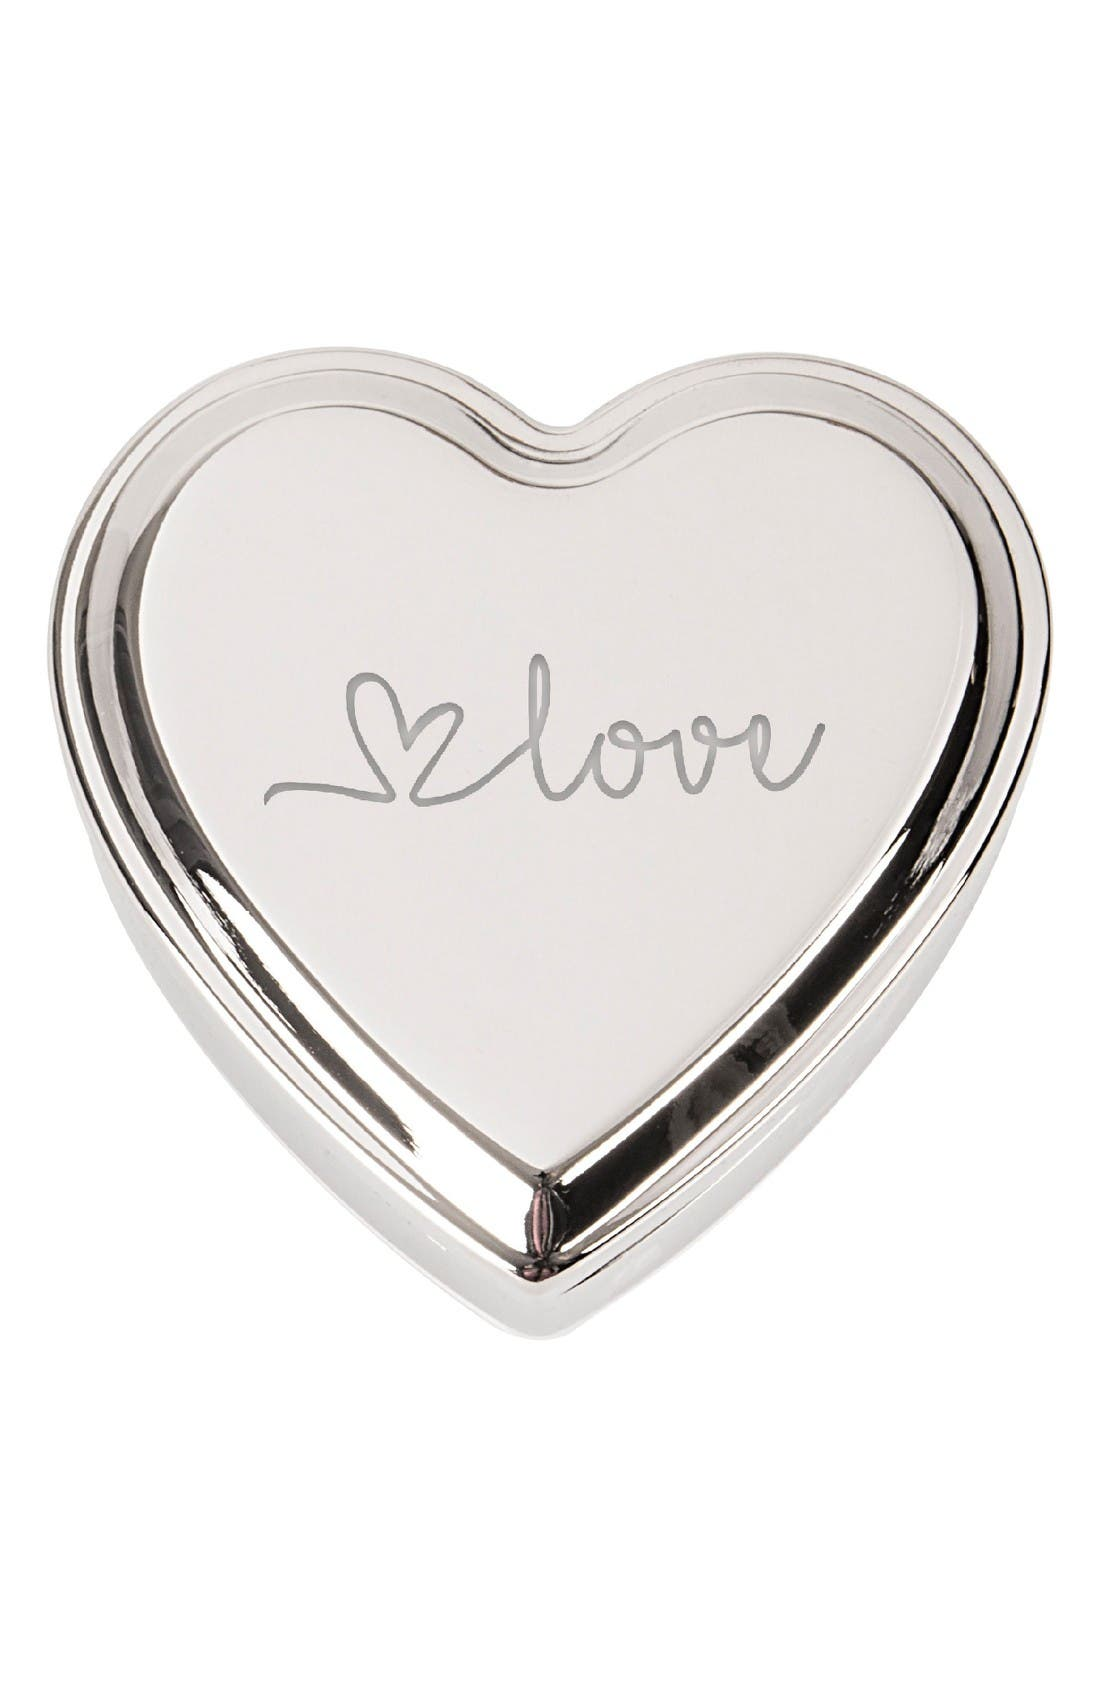 Main Image - Cathy's Concepts Love Heart Keepsake Box